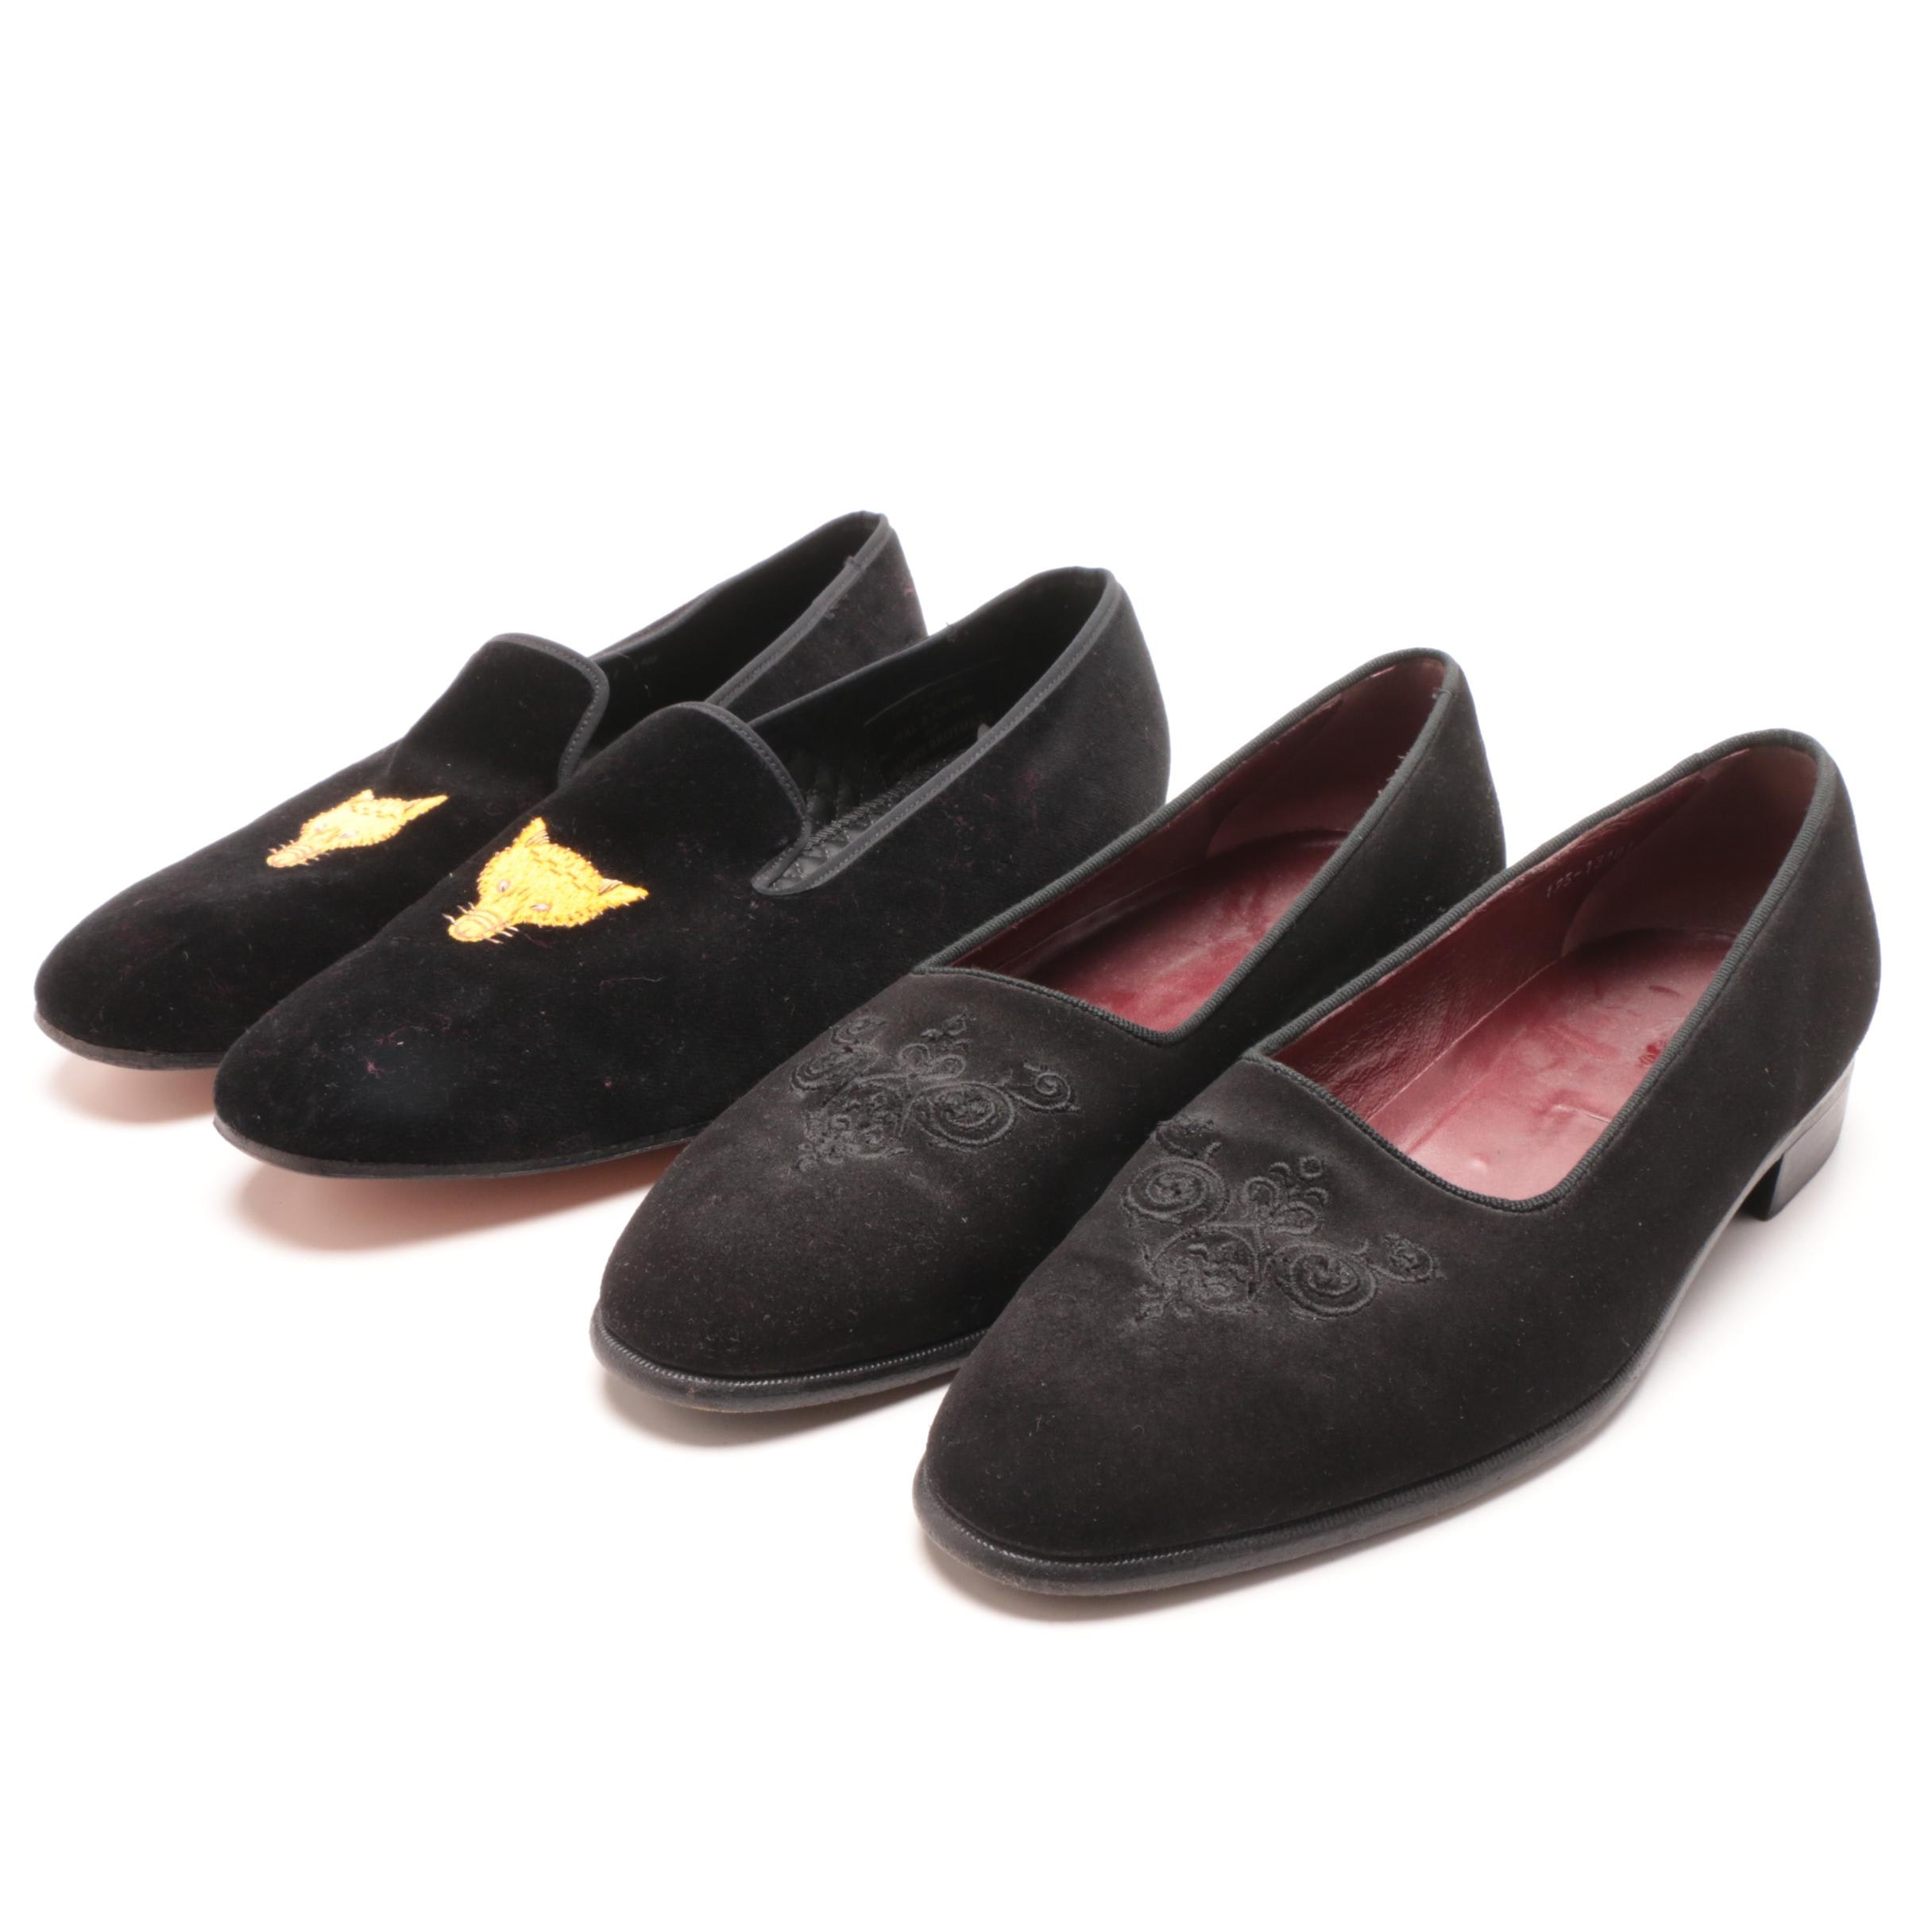 Paul Stuart and Church's Velvet Loafers